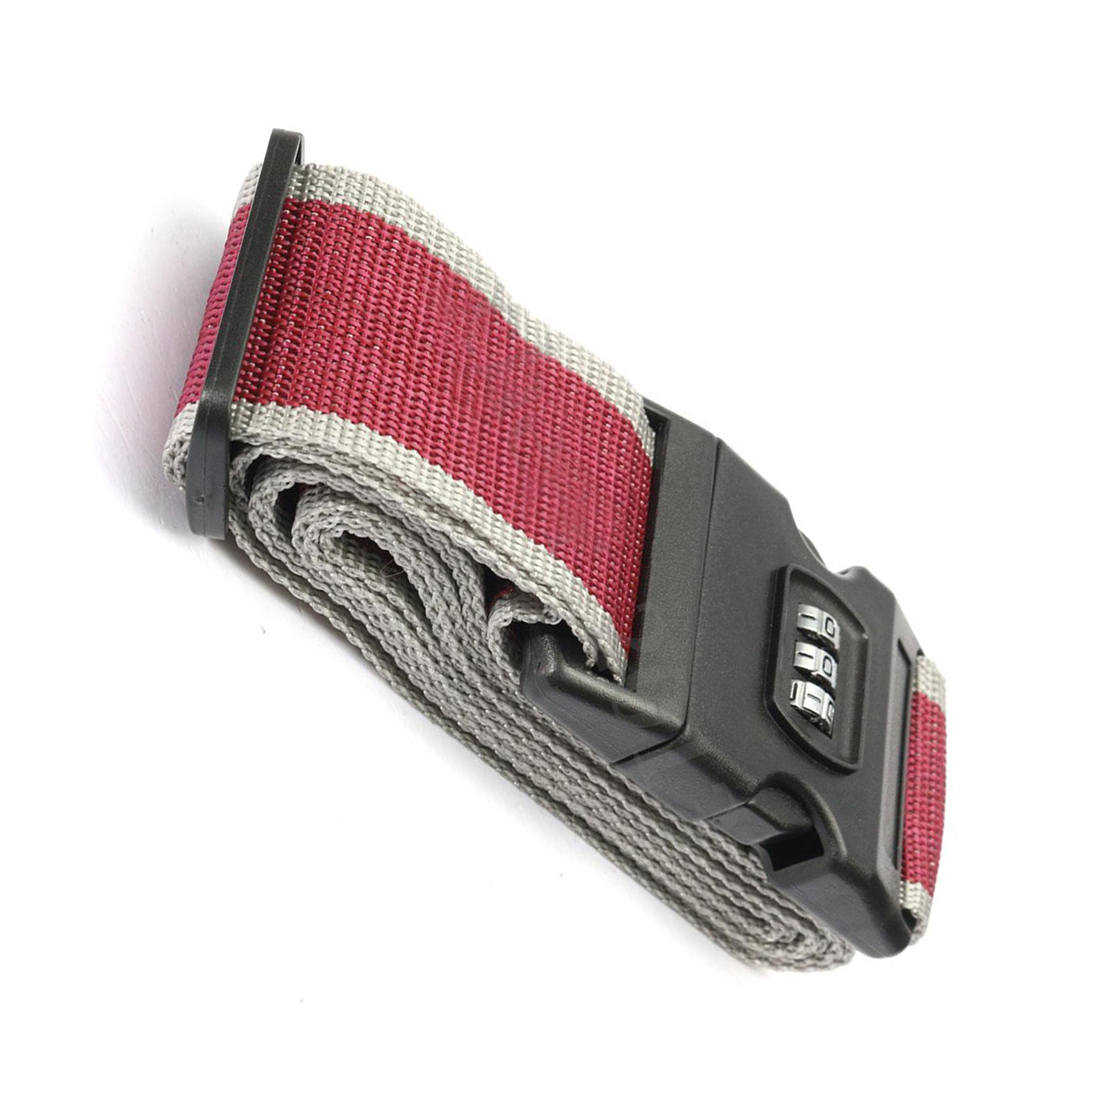 FGGS-Safety belt Belt Lock Combination Travel Luggage Suitcase band color:gray red maritime safety